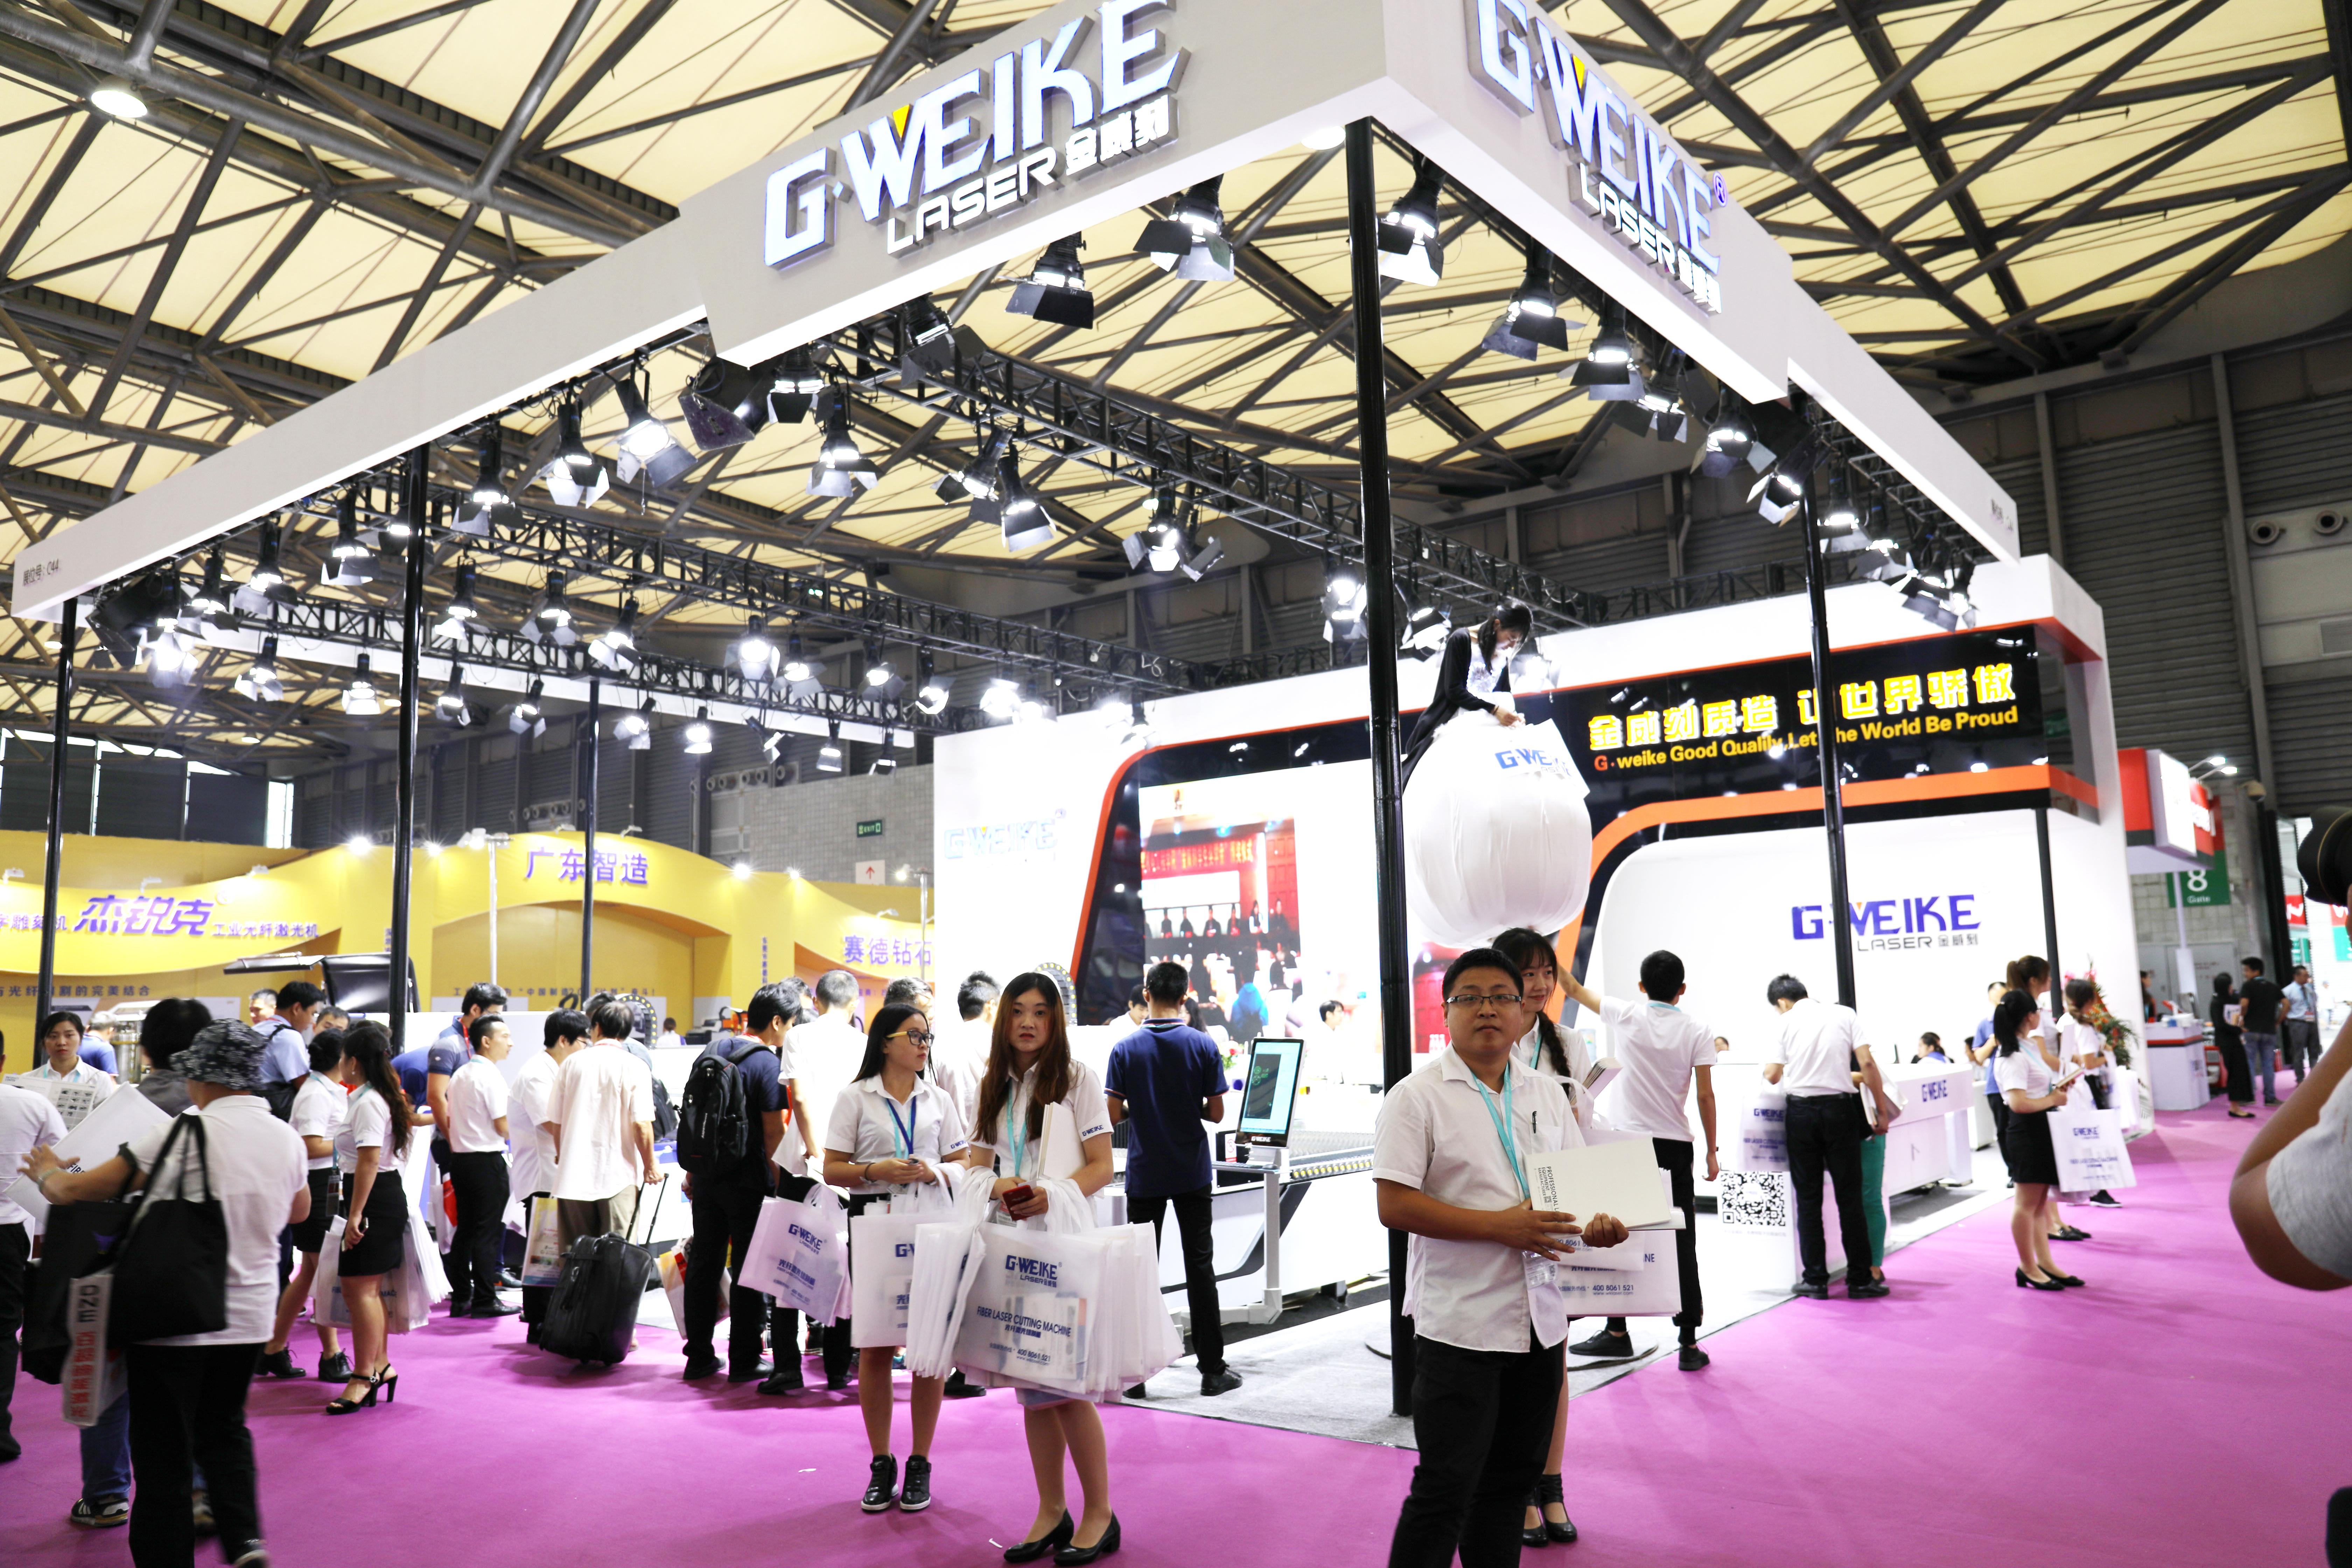 G.WEIKE just wrapped up its show on Shanghai EXPO